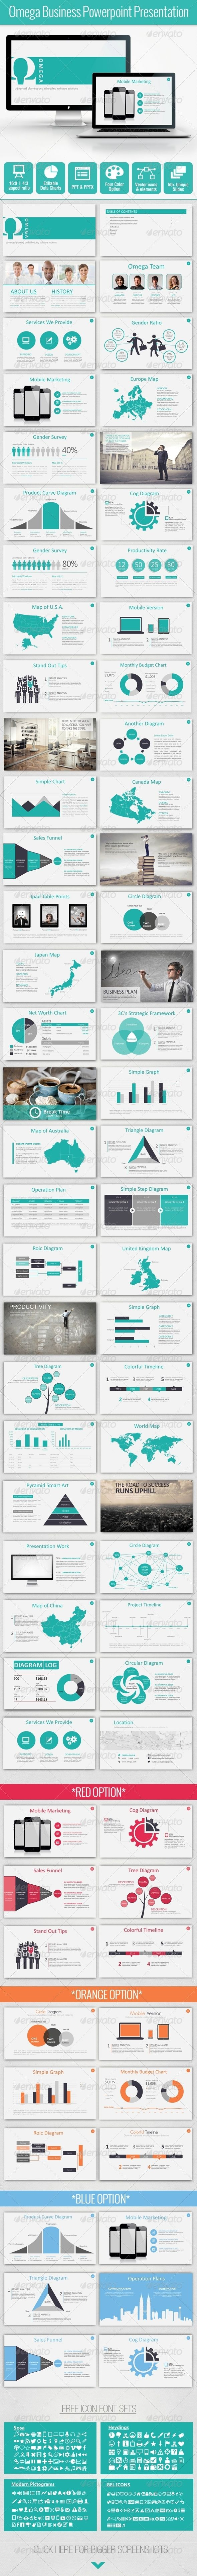 Omega Bussiness Powerpoint Template (Powerpoint Templates)  #Powerpoint #Powerpoint_Template #Presentation